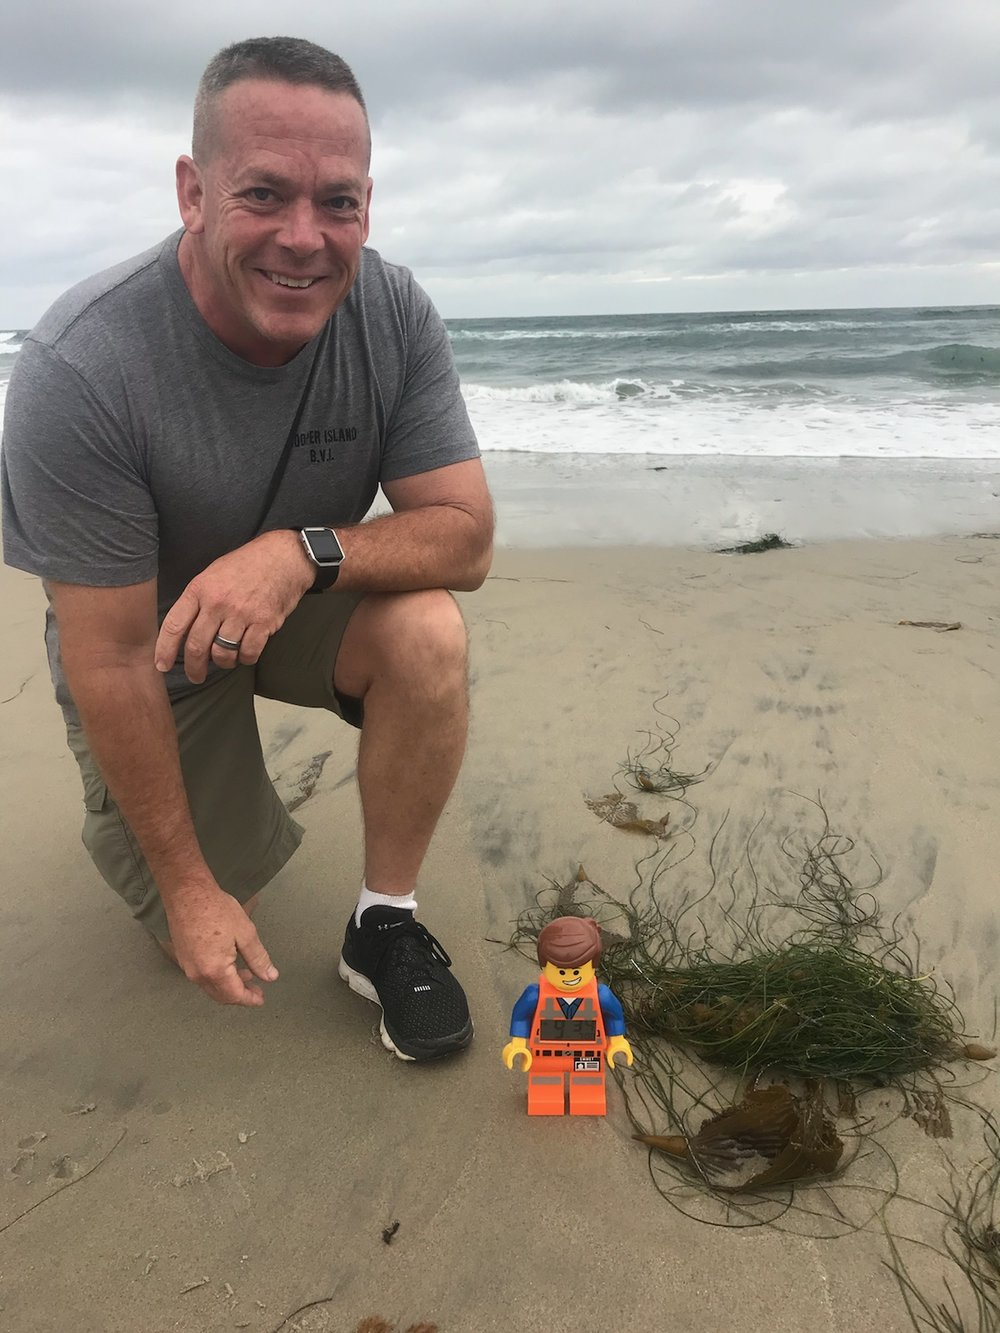 Just an update on our Roadie Award winner, Scott Whitmire:  When Scott isn't helping with logistics on a Sunday morning, he could be at the beach--in San Diego--with the Mountainside Roadie Award (Emmet)!  Of all the people helping serve at Mountainside, I wonder who will be taking home the Roadie Award this winter?